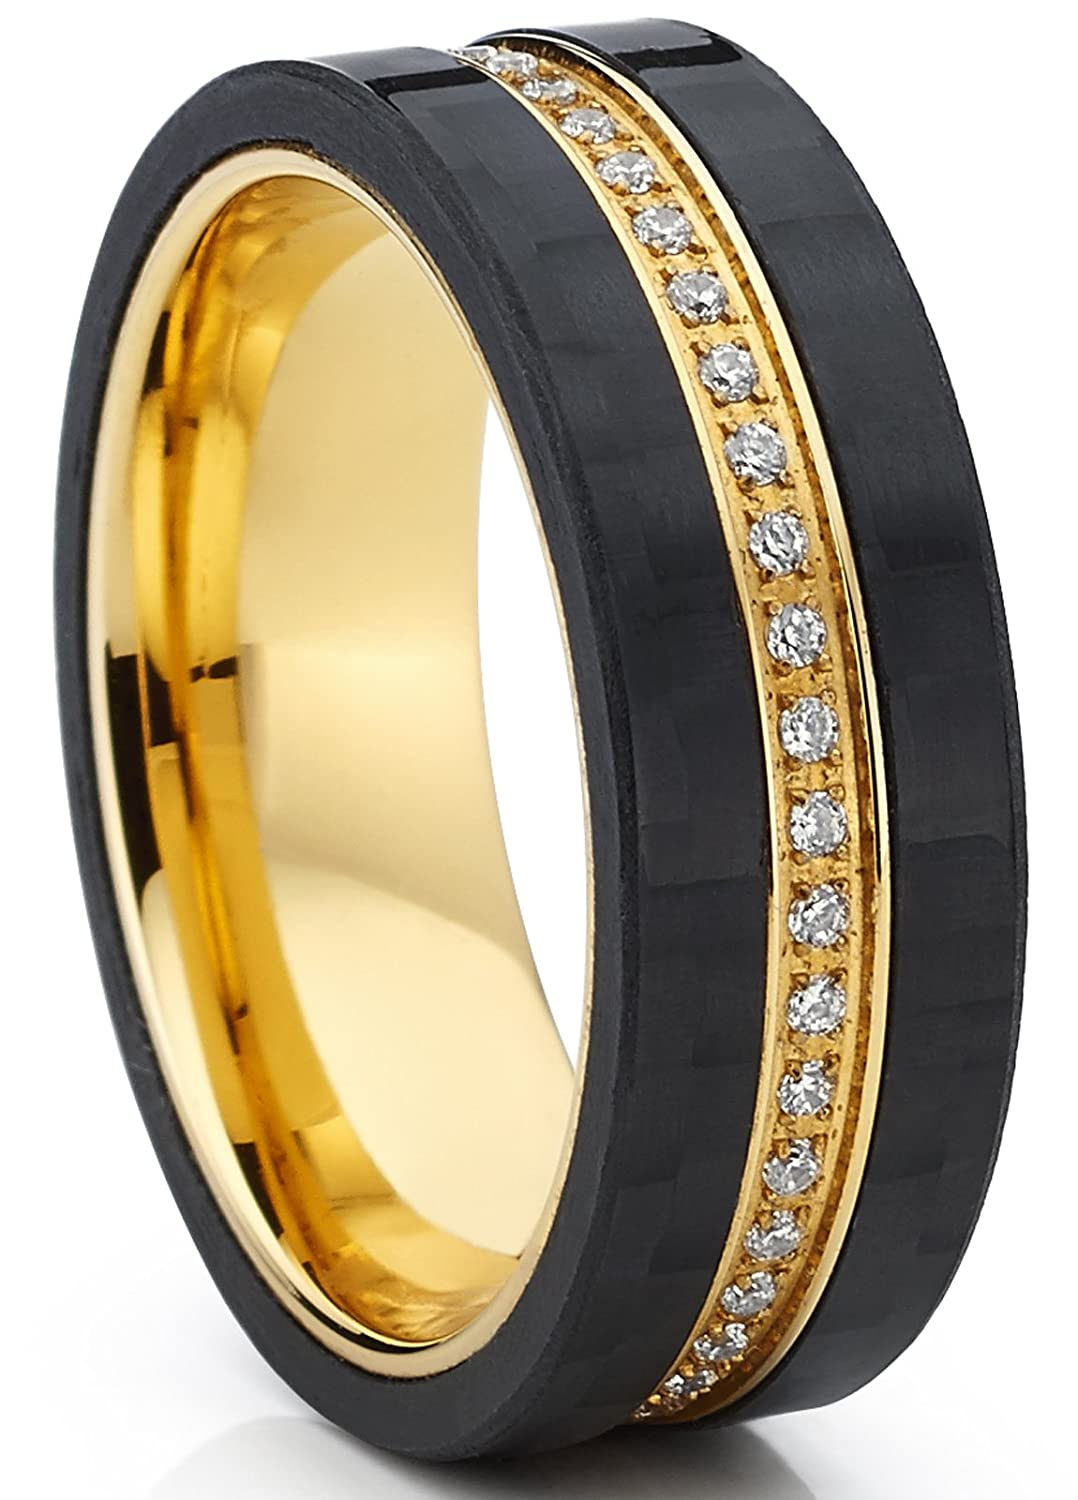 GoldTone Titanium Men's Eternity Wedding Band Ring with Cubic Zirconia CZ and Carbon Fiber Edges TIR-1295